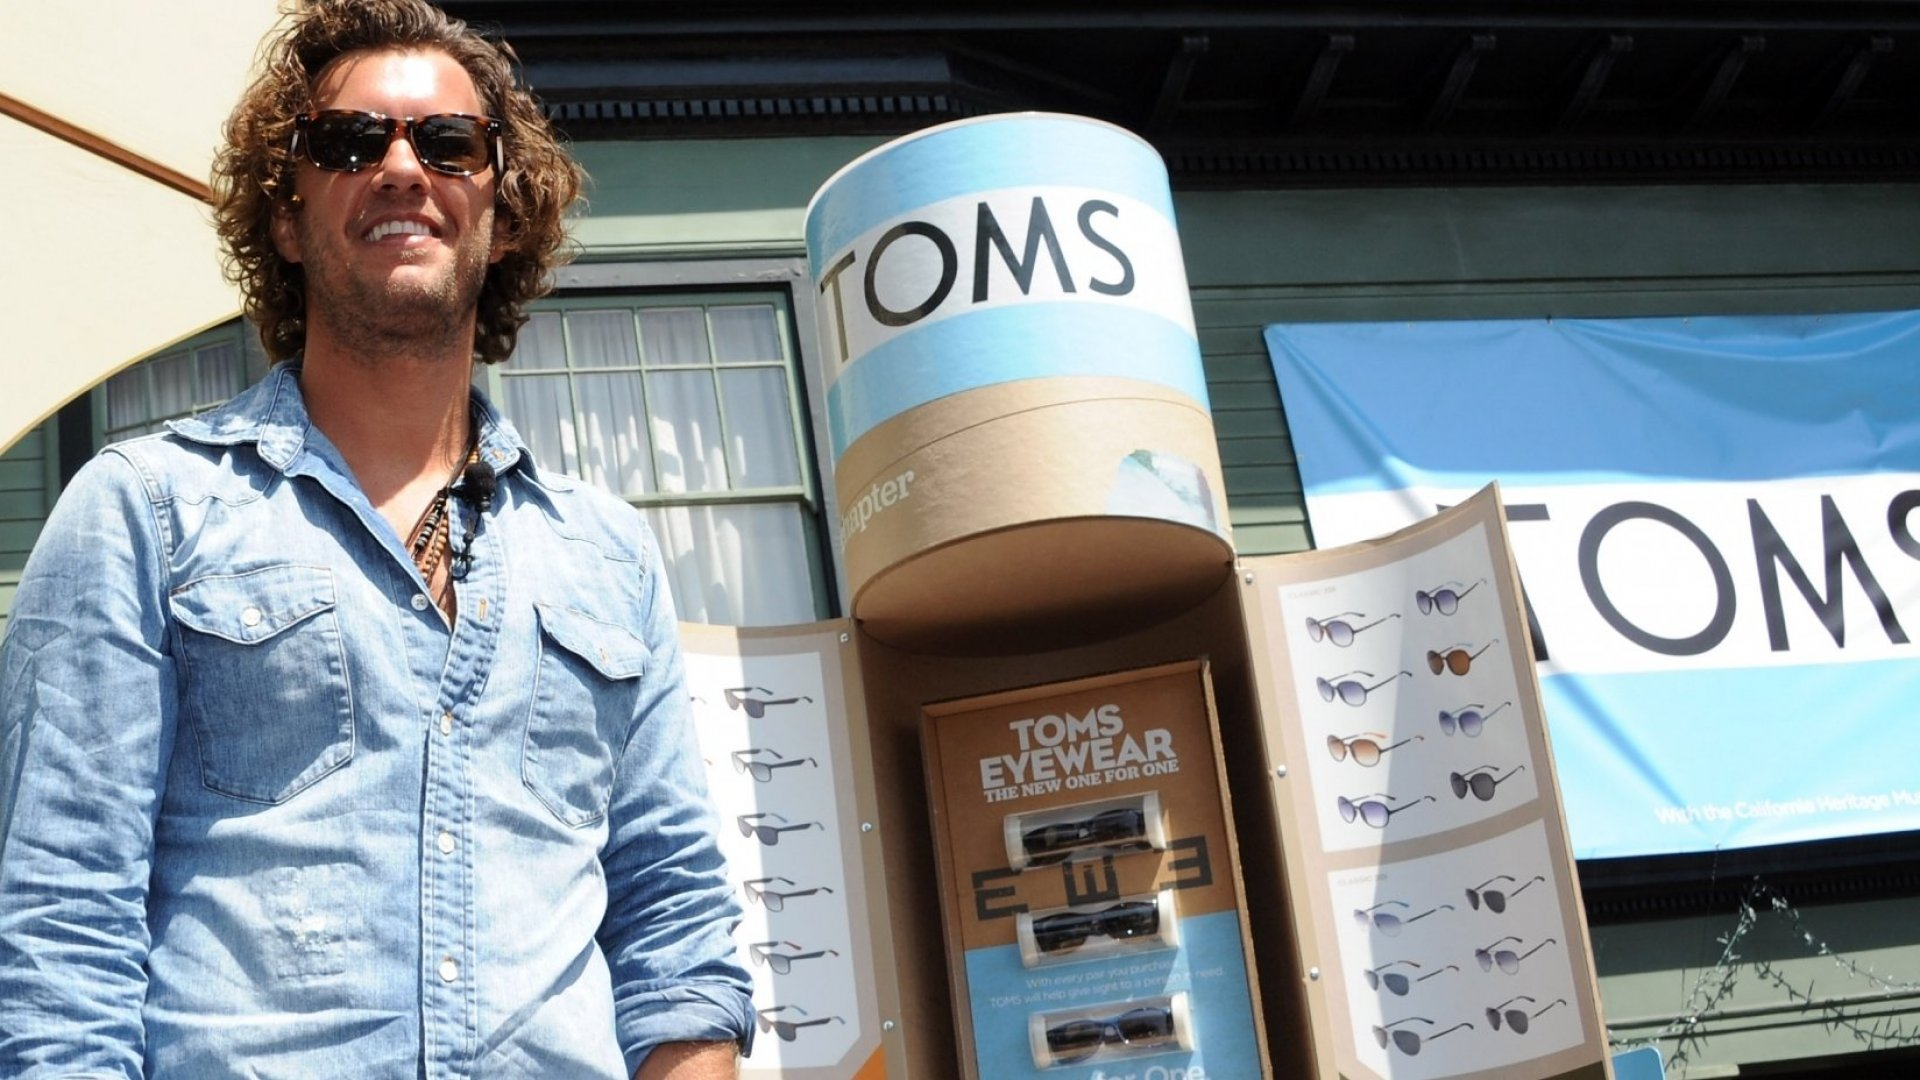 TOMS Founder and Supermodel Christy Turlington Burns on How to Be a Social Entrepreneur Now